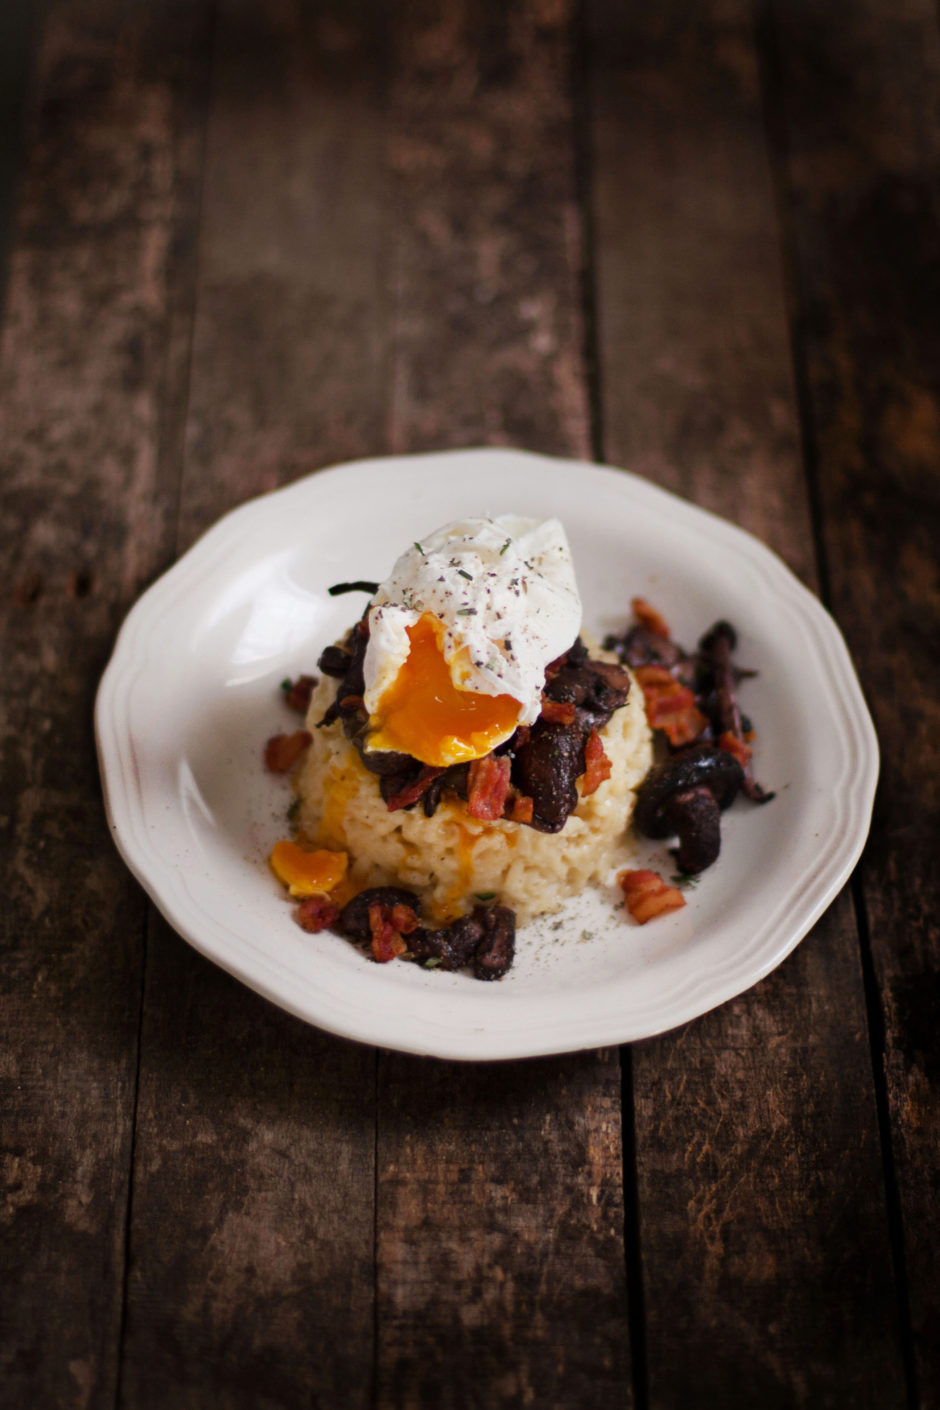 Mushroom & Bacon Risotto with a Poached Egg